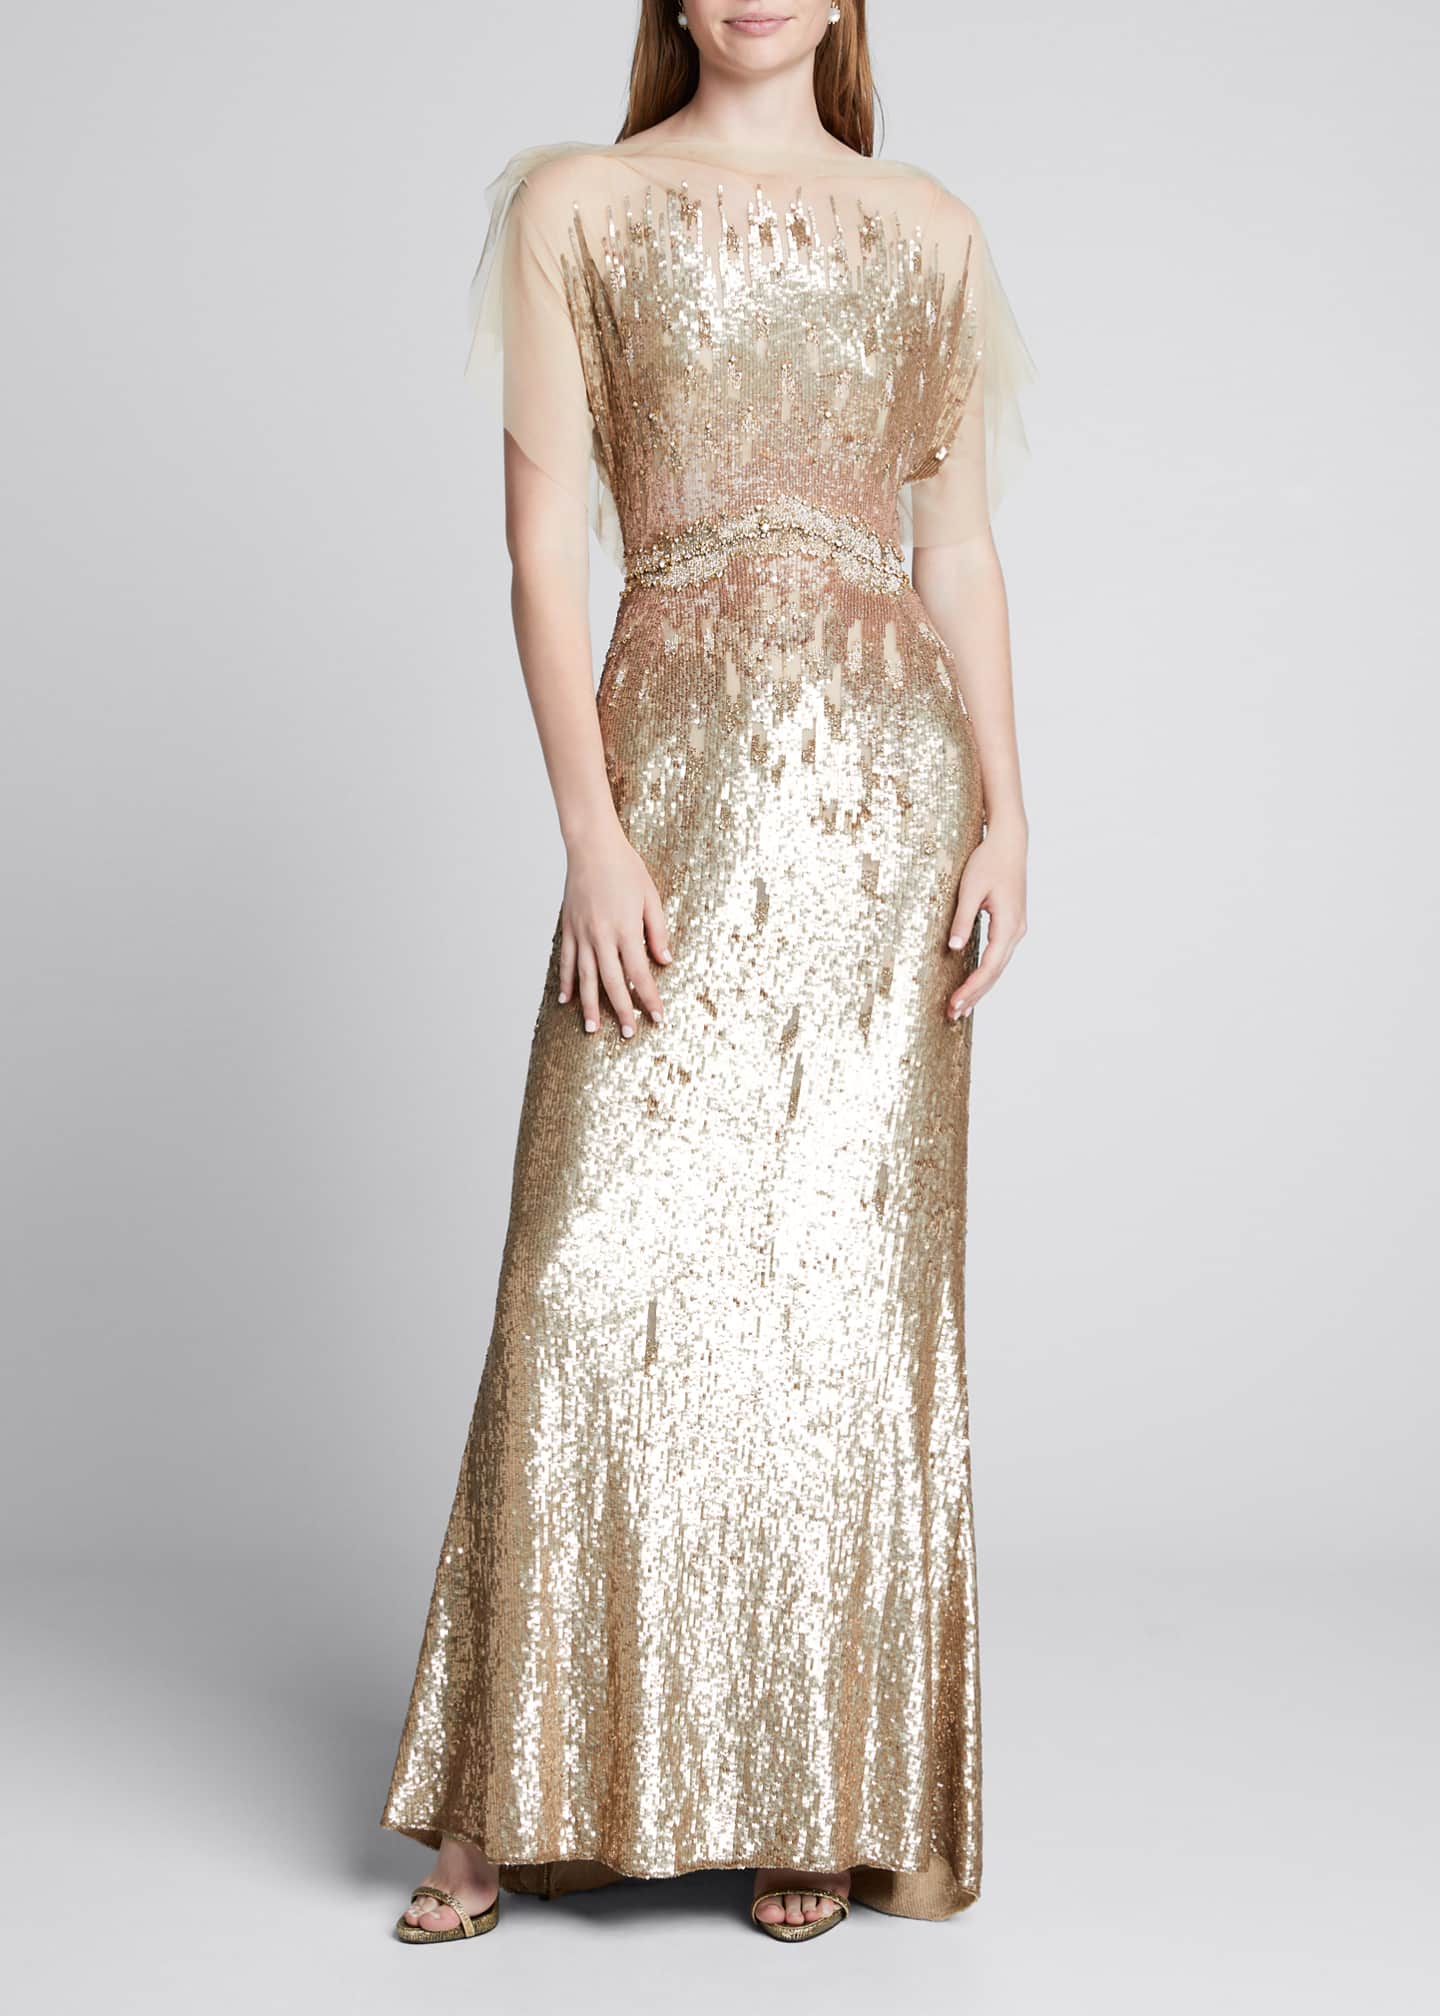 Jenny Packham Tulle-Top Sleeveless Duchess Gown